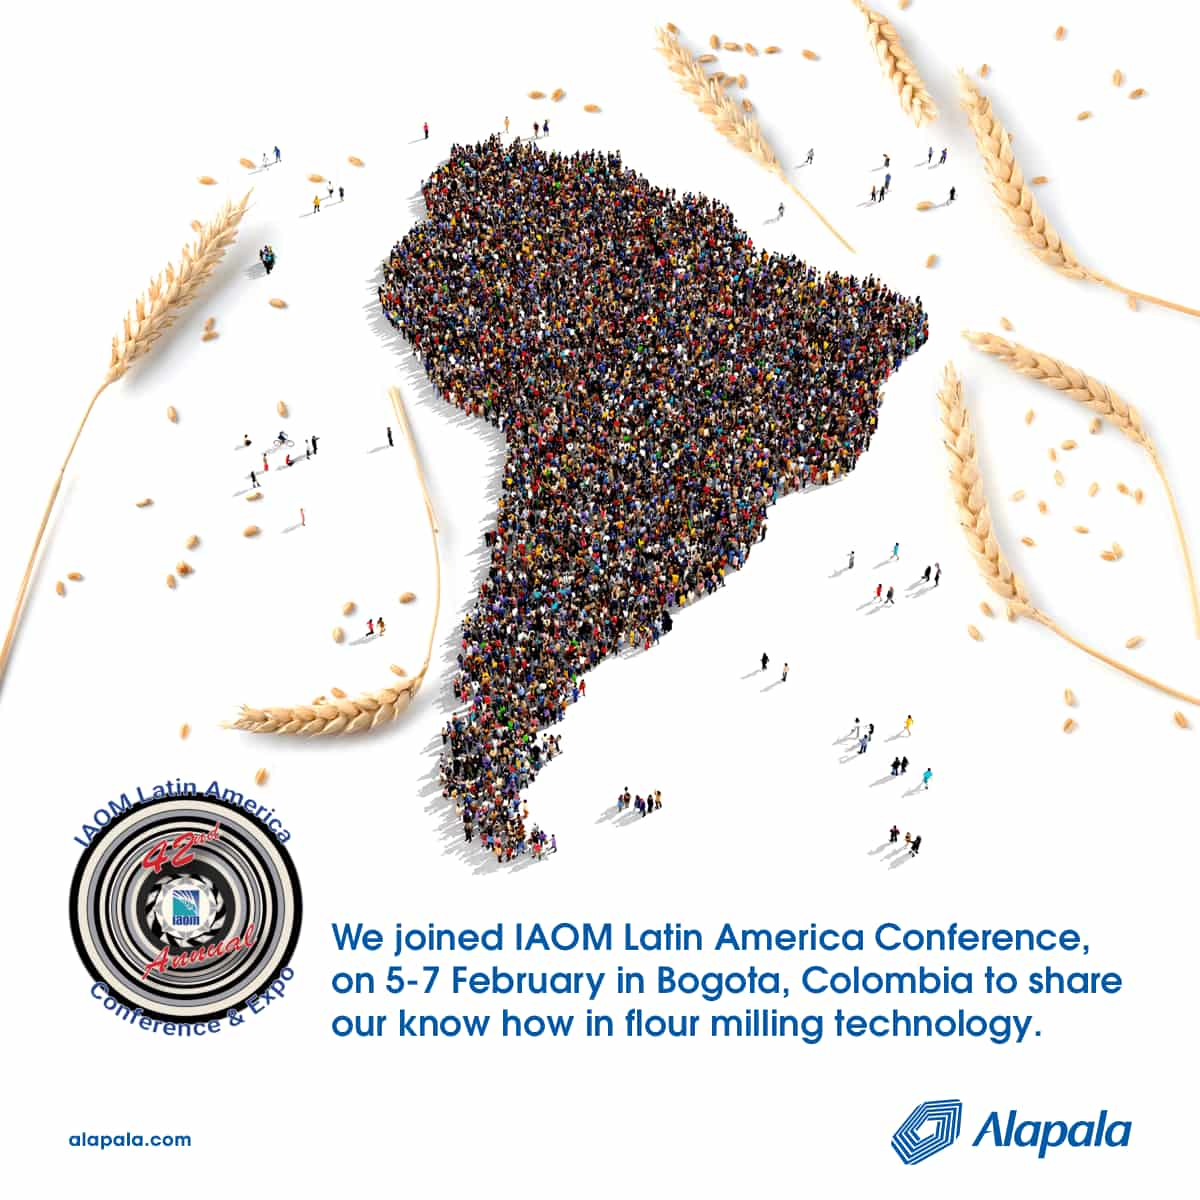 42nd Annual Latin America Region Conference & Expo